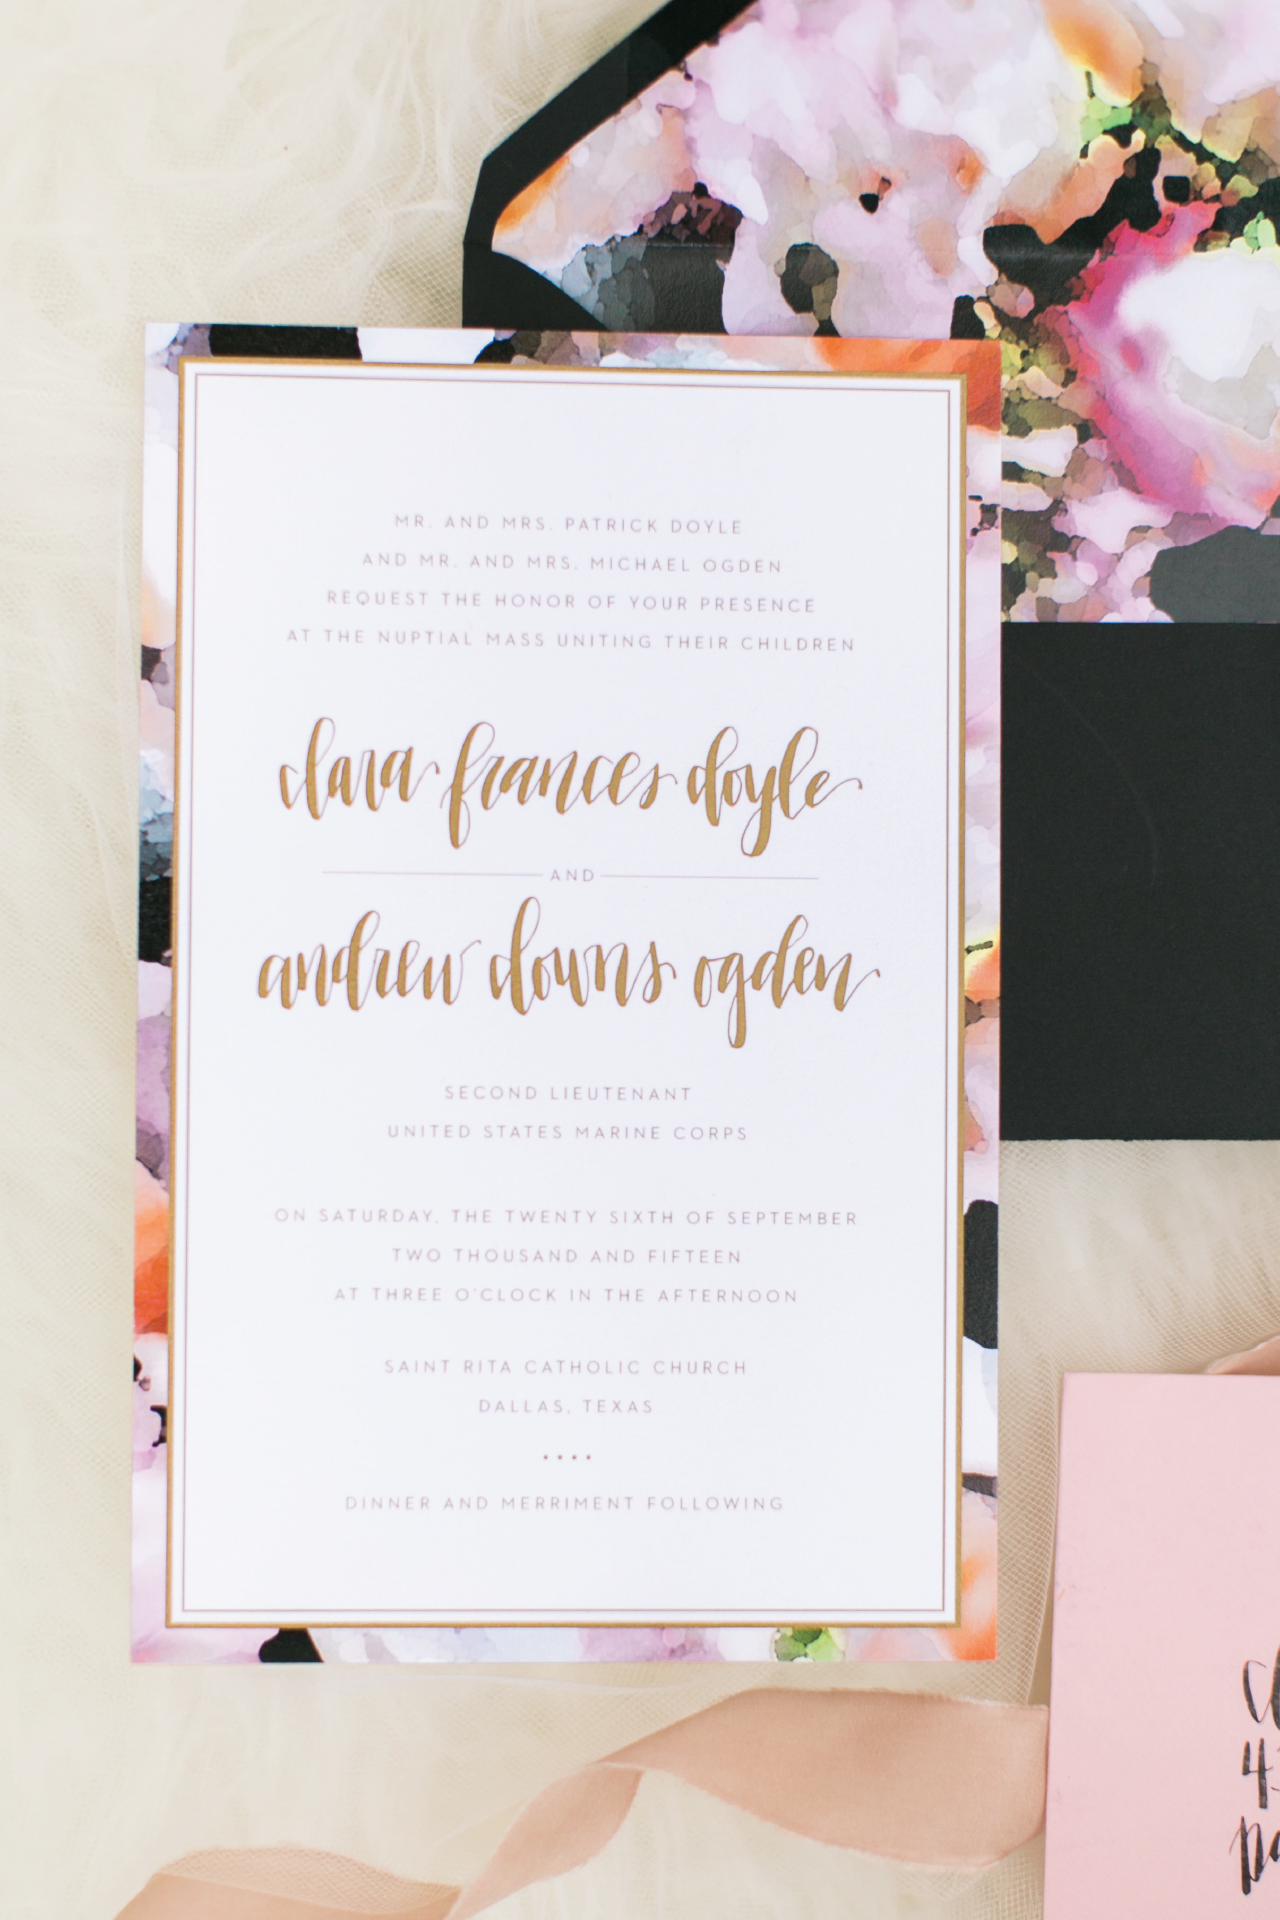 Simple gold wedding invitation with watercolor floral pattern accent as a border.